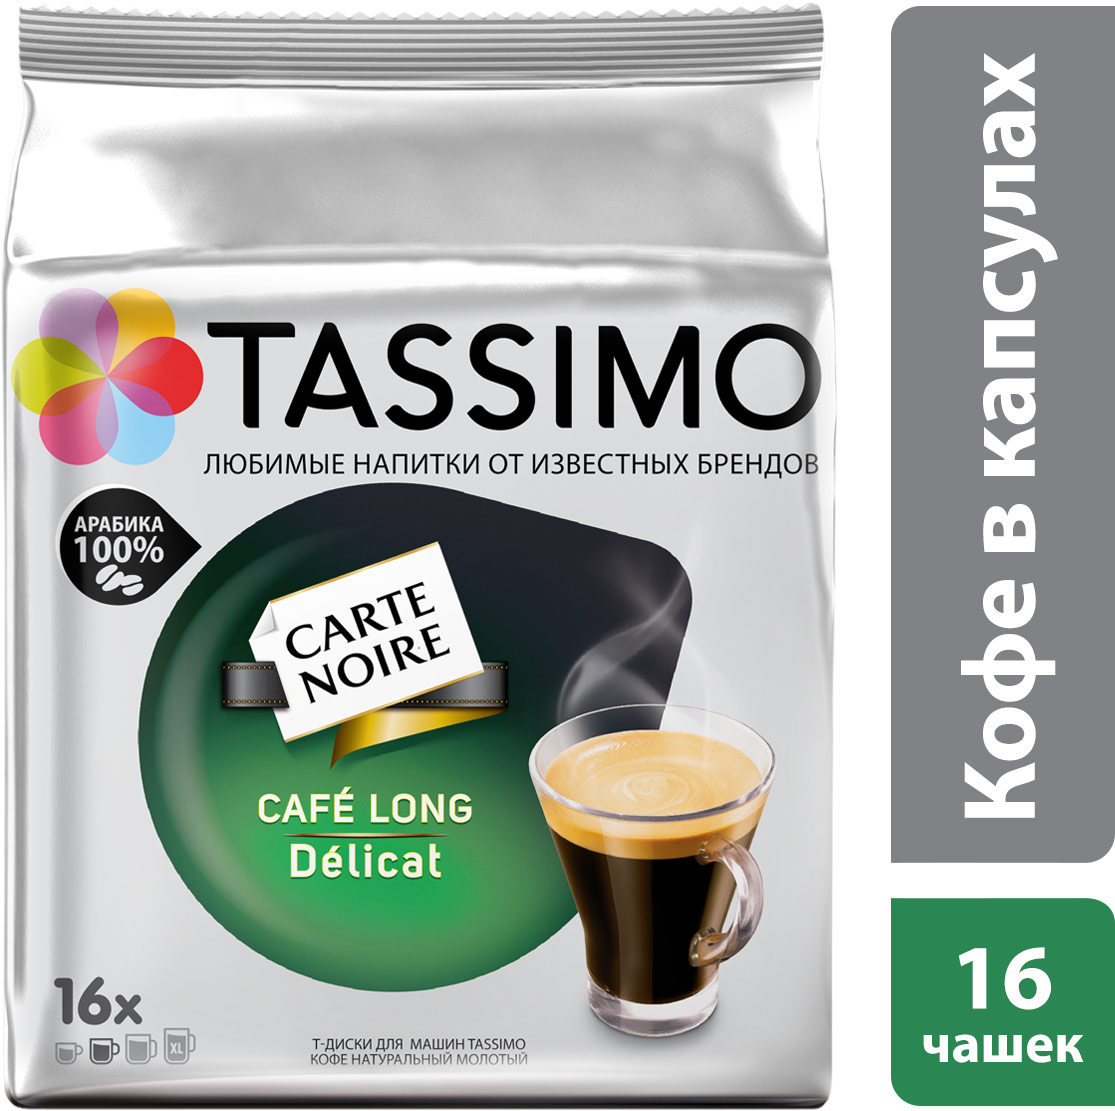 Tassimo Carte Noire Cafe Long Delicat кофе в капсулах, 16 шт carte noire кофе